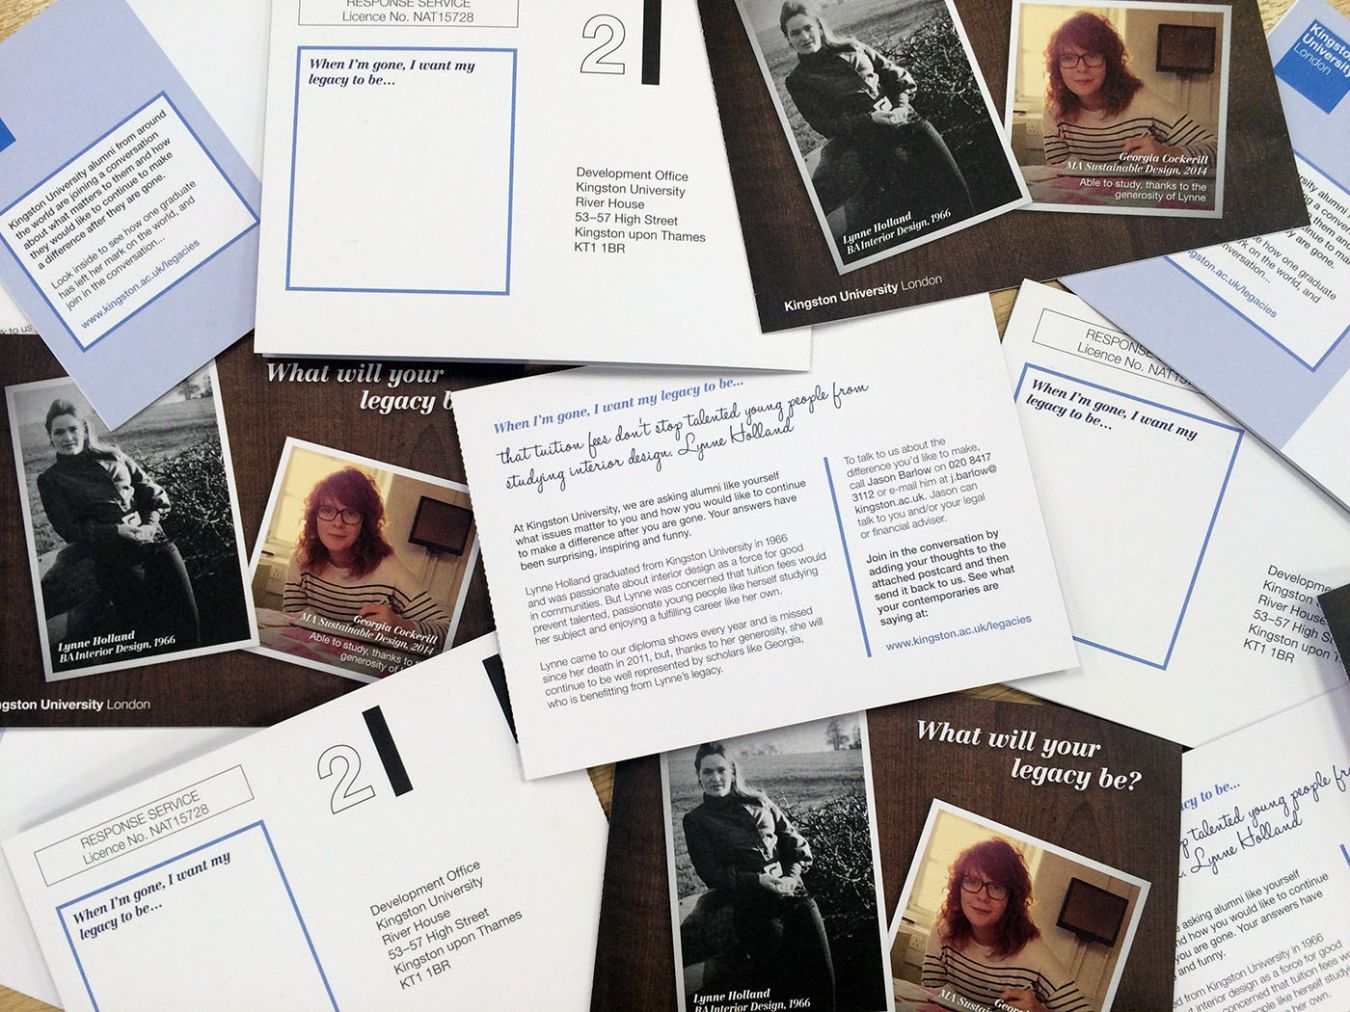 Kingston University has been asking its alumni how they want to be remembered as part of a new legacy campaign.